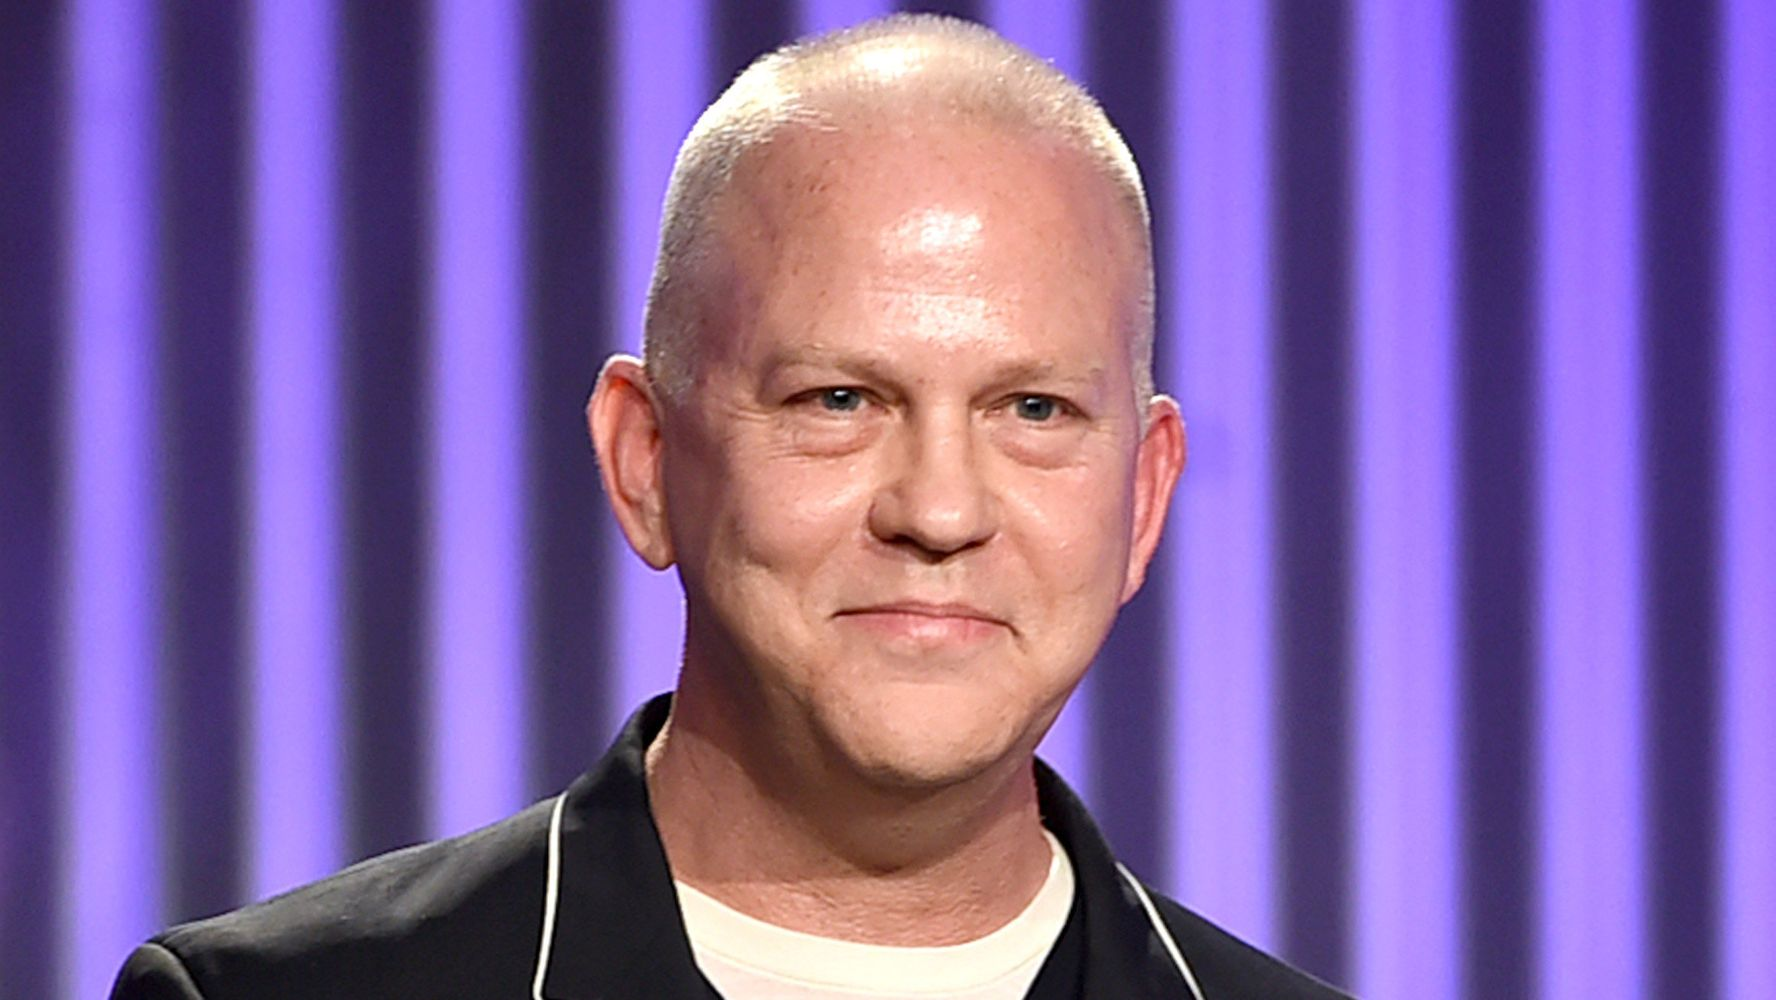 Ryan Murphy Apologizes To Women In Hollywood For The Industry's Lack Of Equality